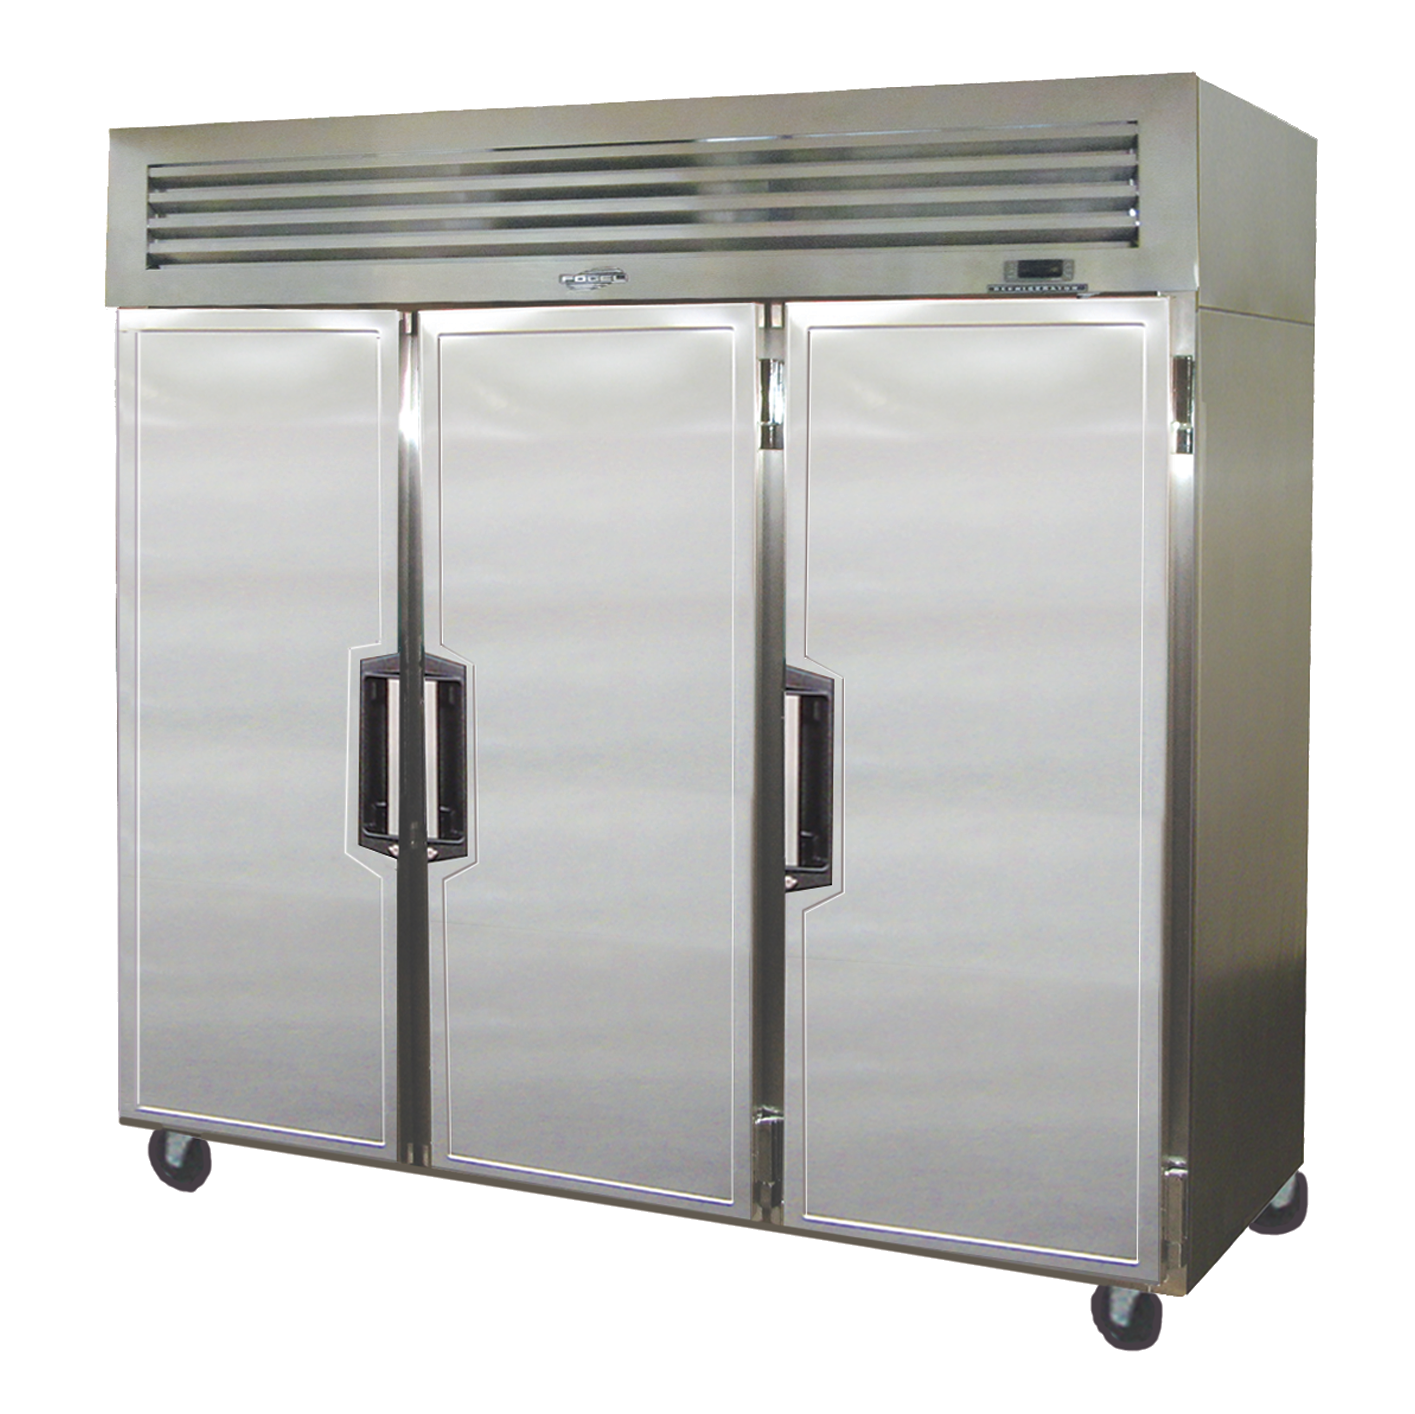 Fogel USA SKT-74 refrigerator, reach-in